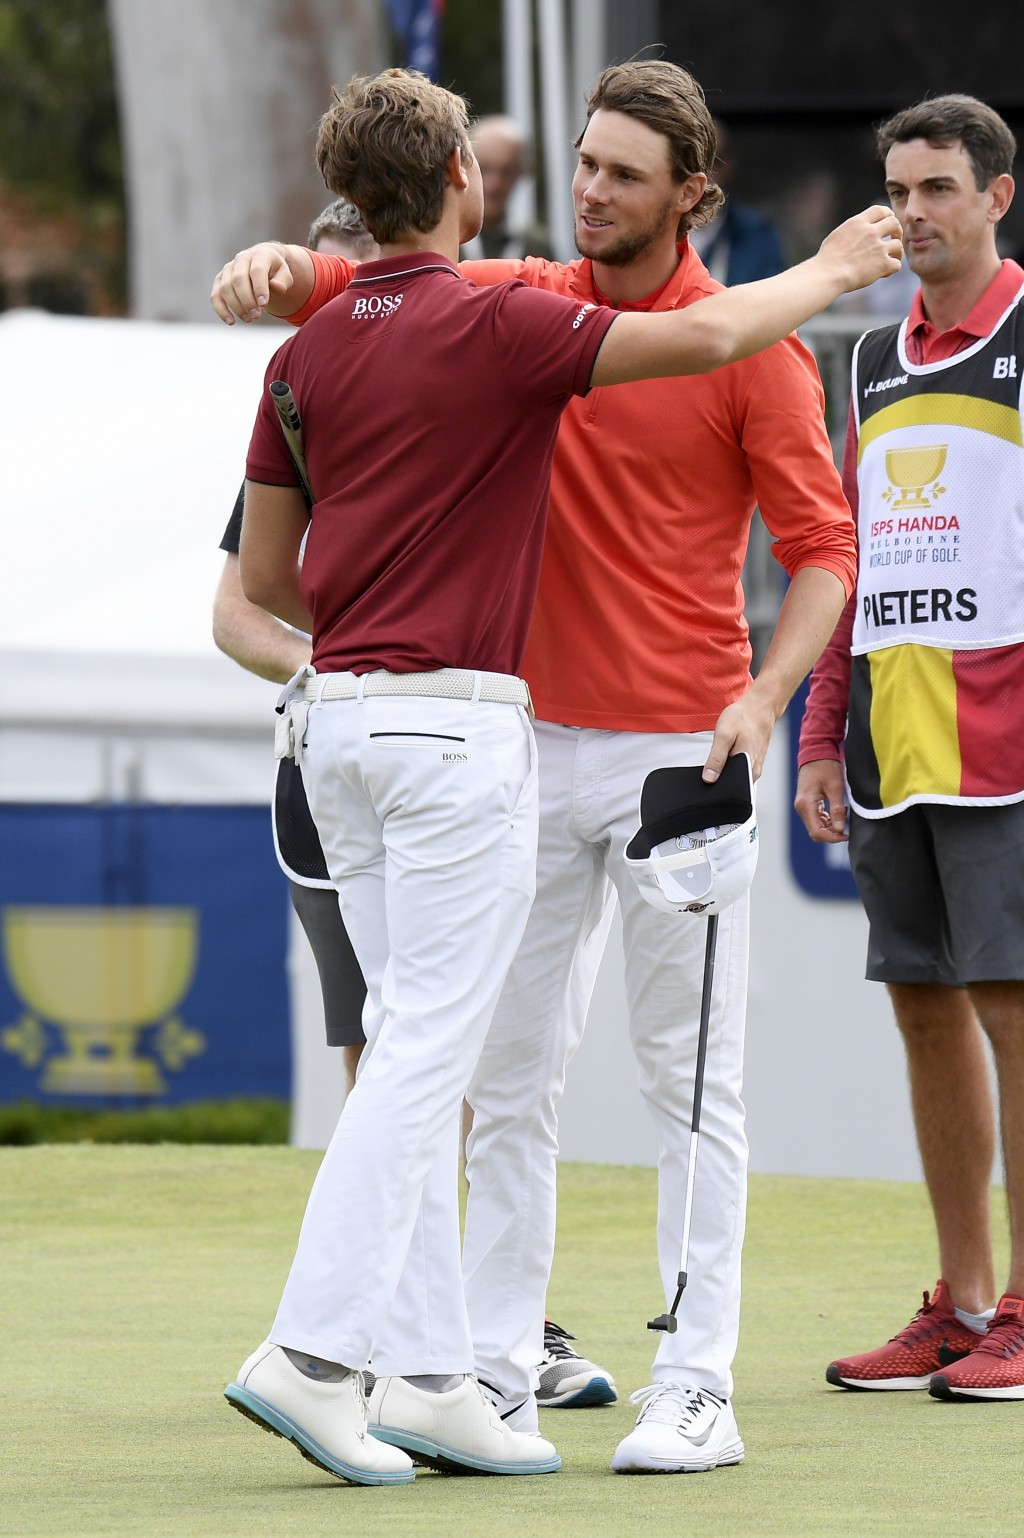 Belgium's Thomas Detry, left, and Thomas Pieters hug each other on the 18th green after winning the World Cup of Golf in Melbourne, Australia, Sunday,...